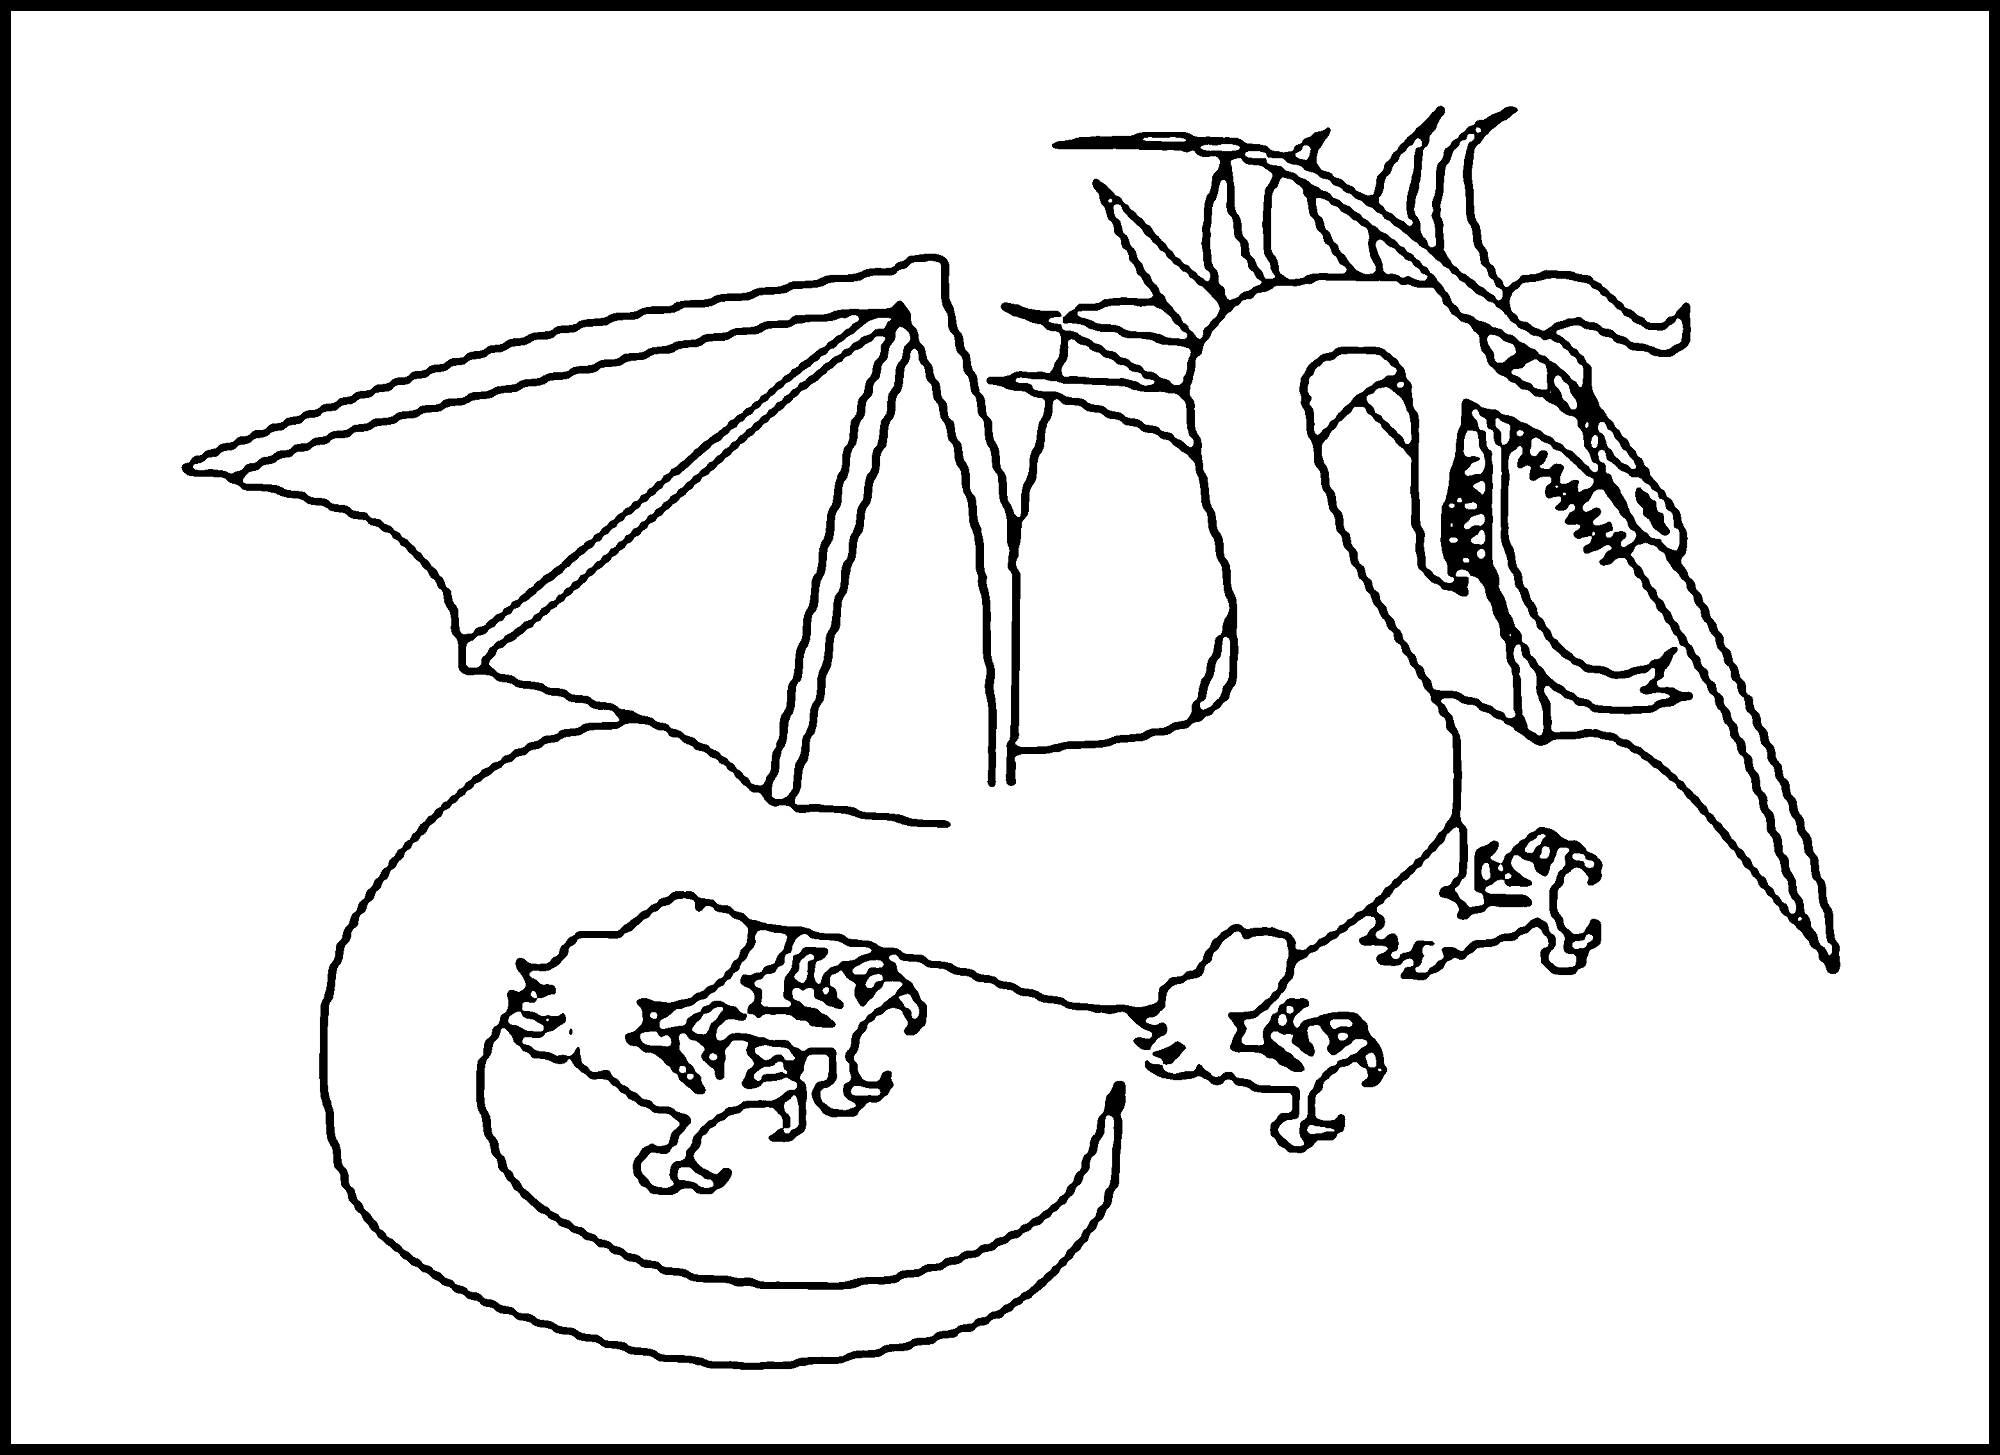 dragon colouring in pictures dragon coloring download dragon coloring for free 2019 colouring dragon pictures in